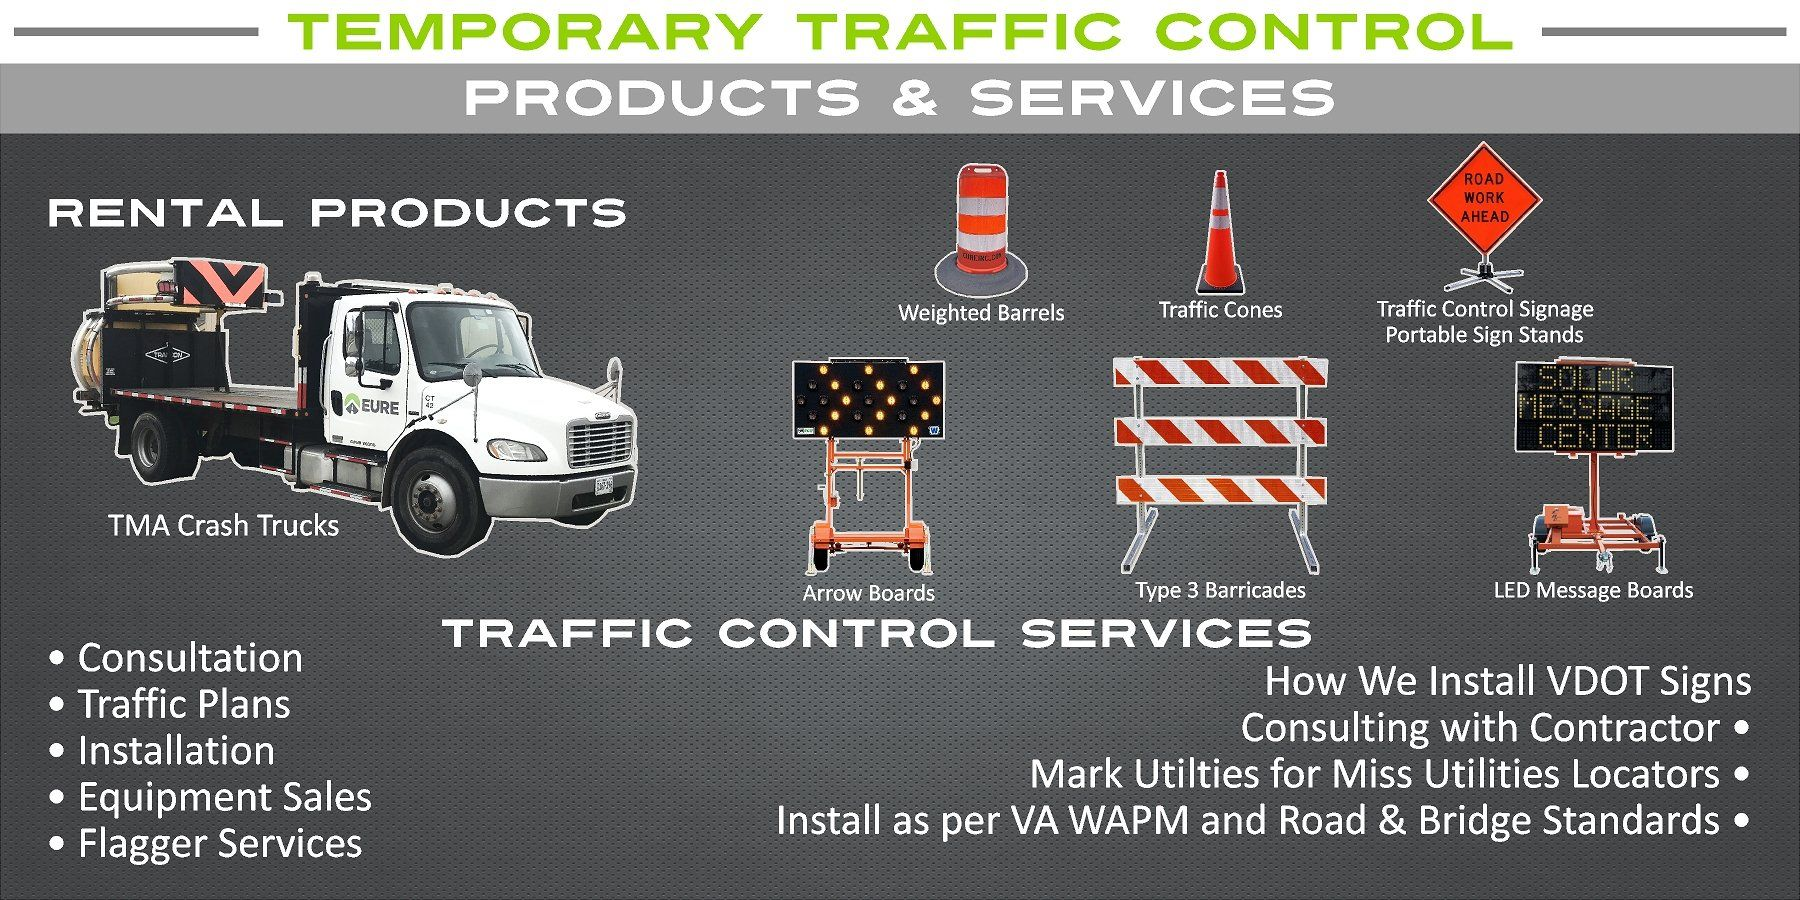 Traffic Control Products & Services